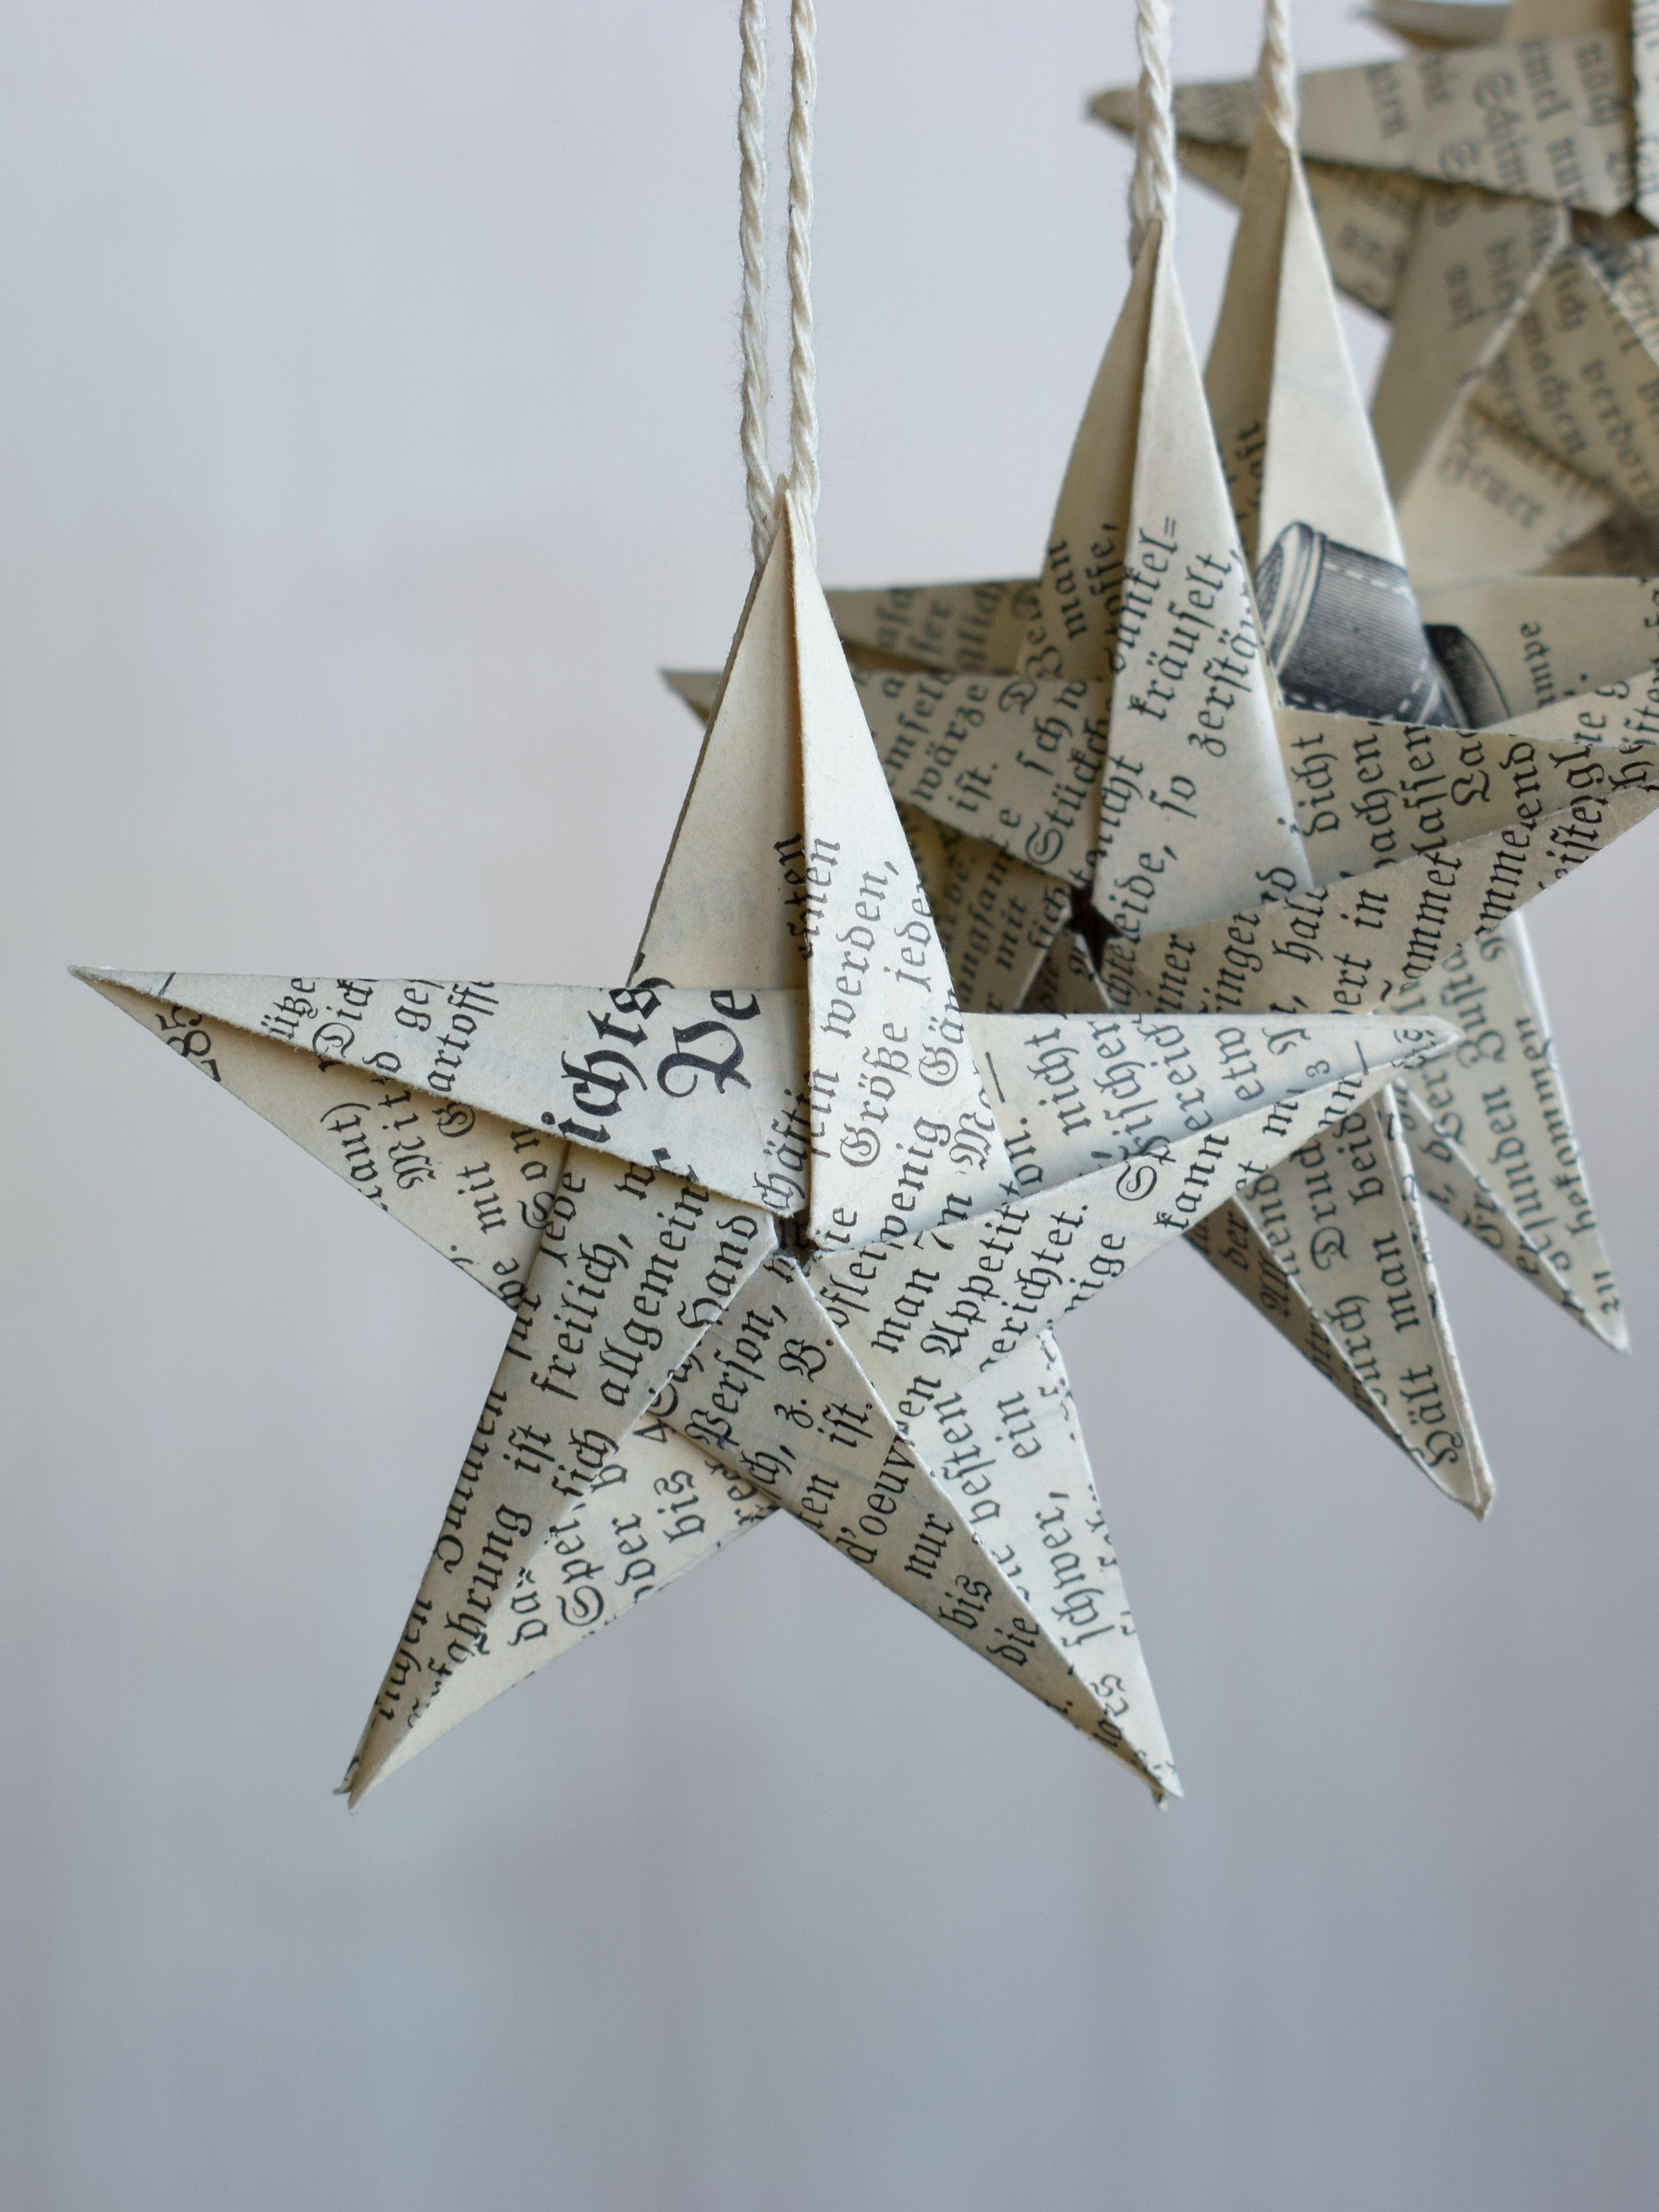 Origami Stars Antique Book Page Hanging Ornaments From Oldpapercrafts Hanging Origami Origami Stars Paper Christmas Ornaments